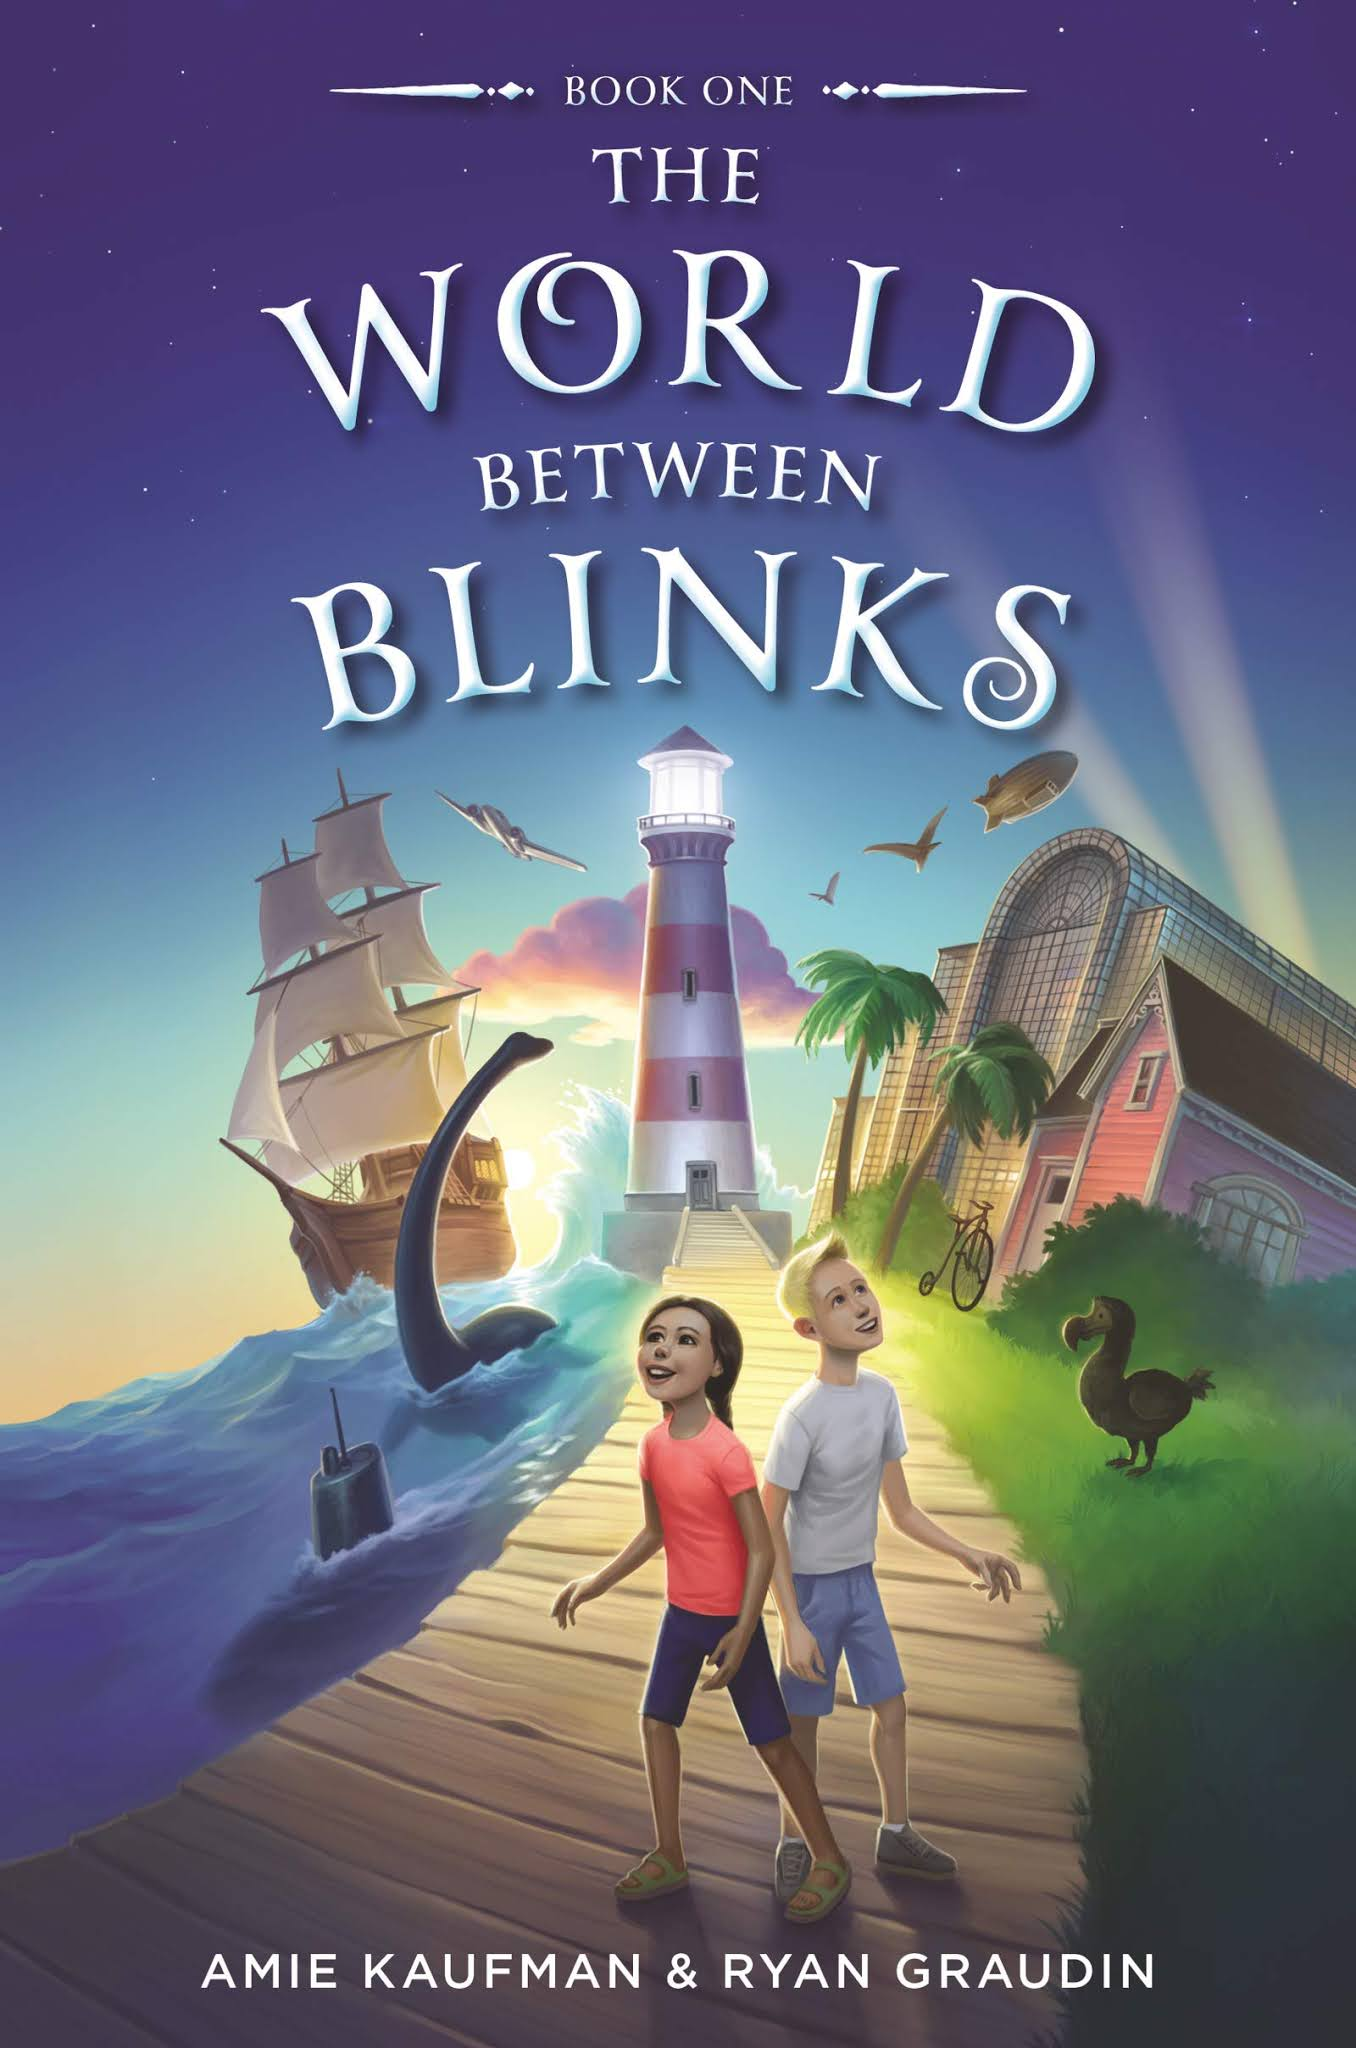 The World Between Blinks by Amie Kaufman and Ryan Graudin